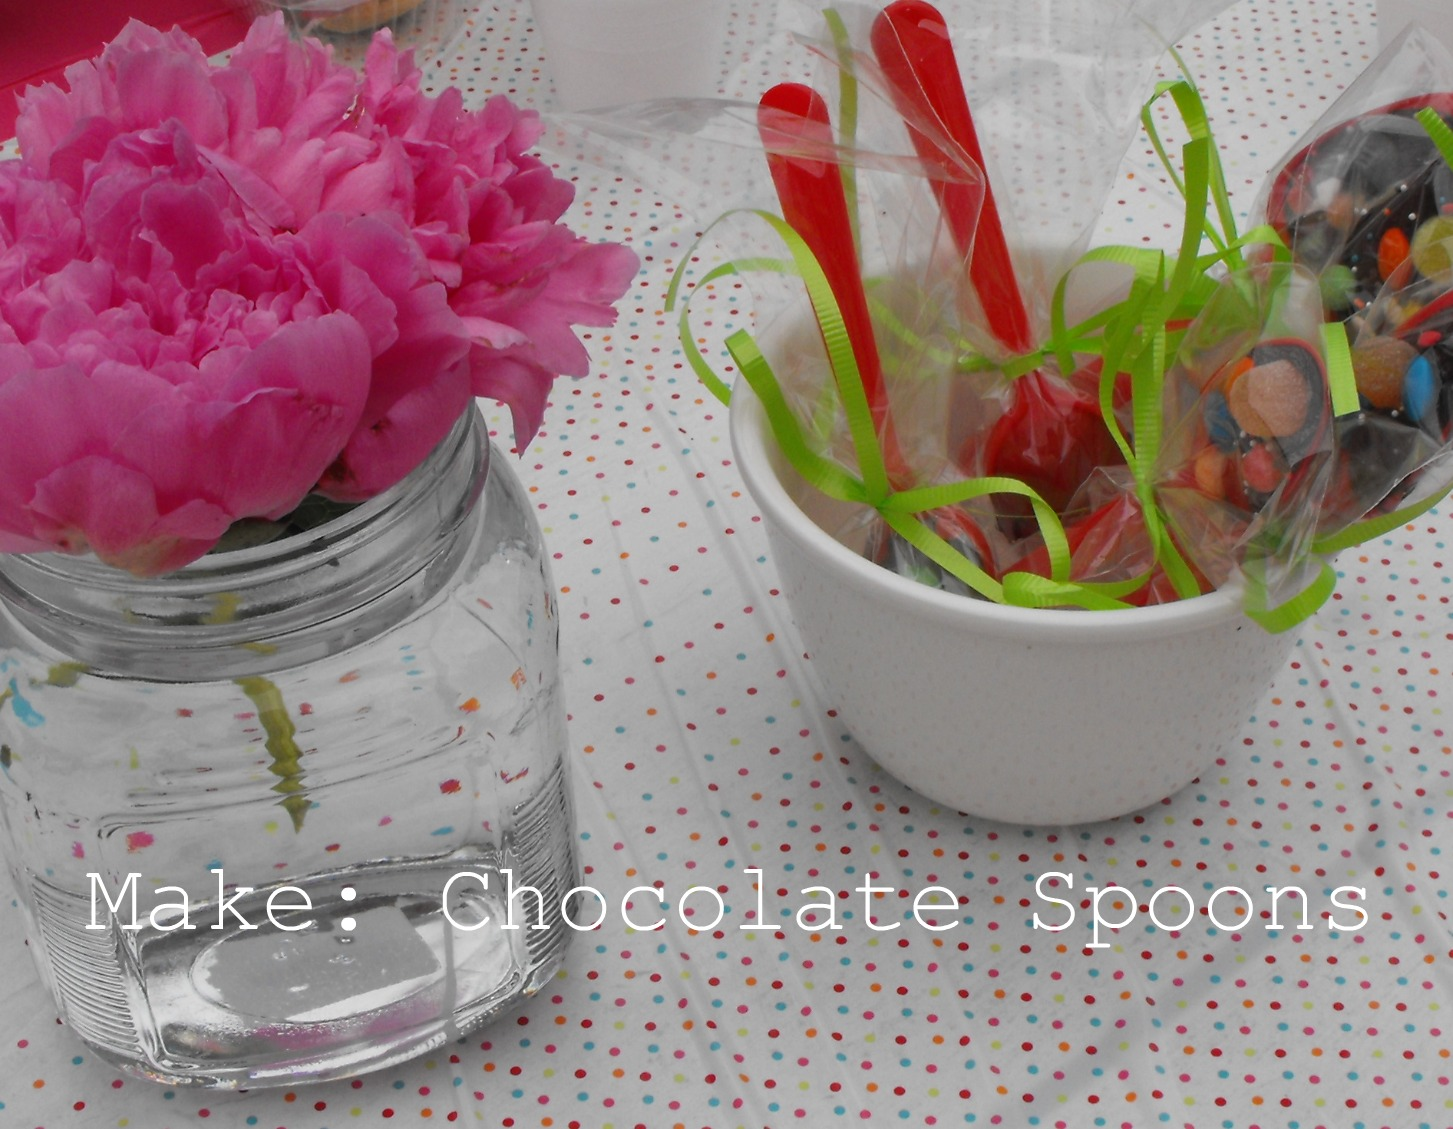 How To Make Chocolate Spoons The Girl Creative